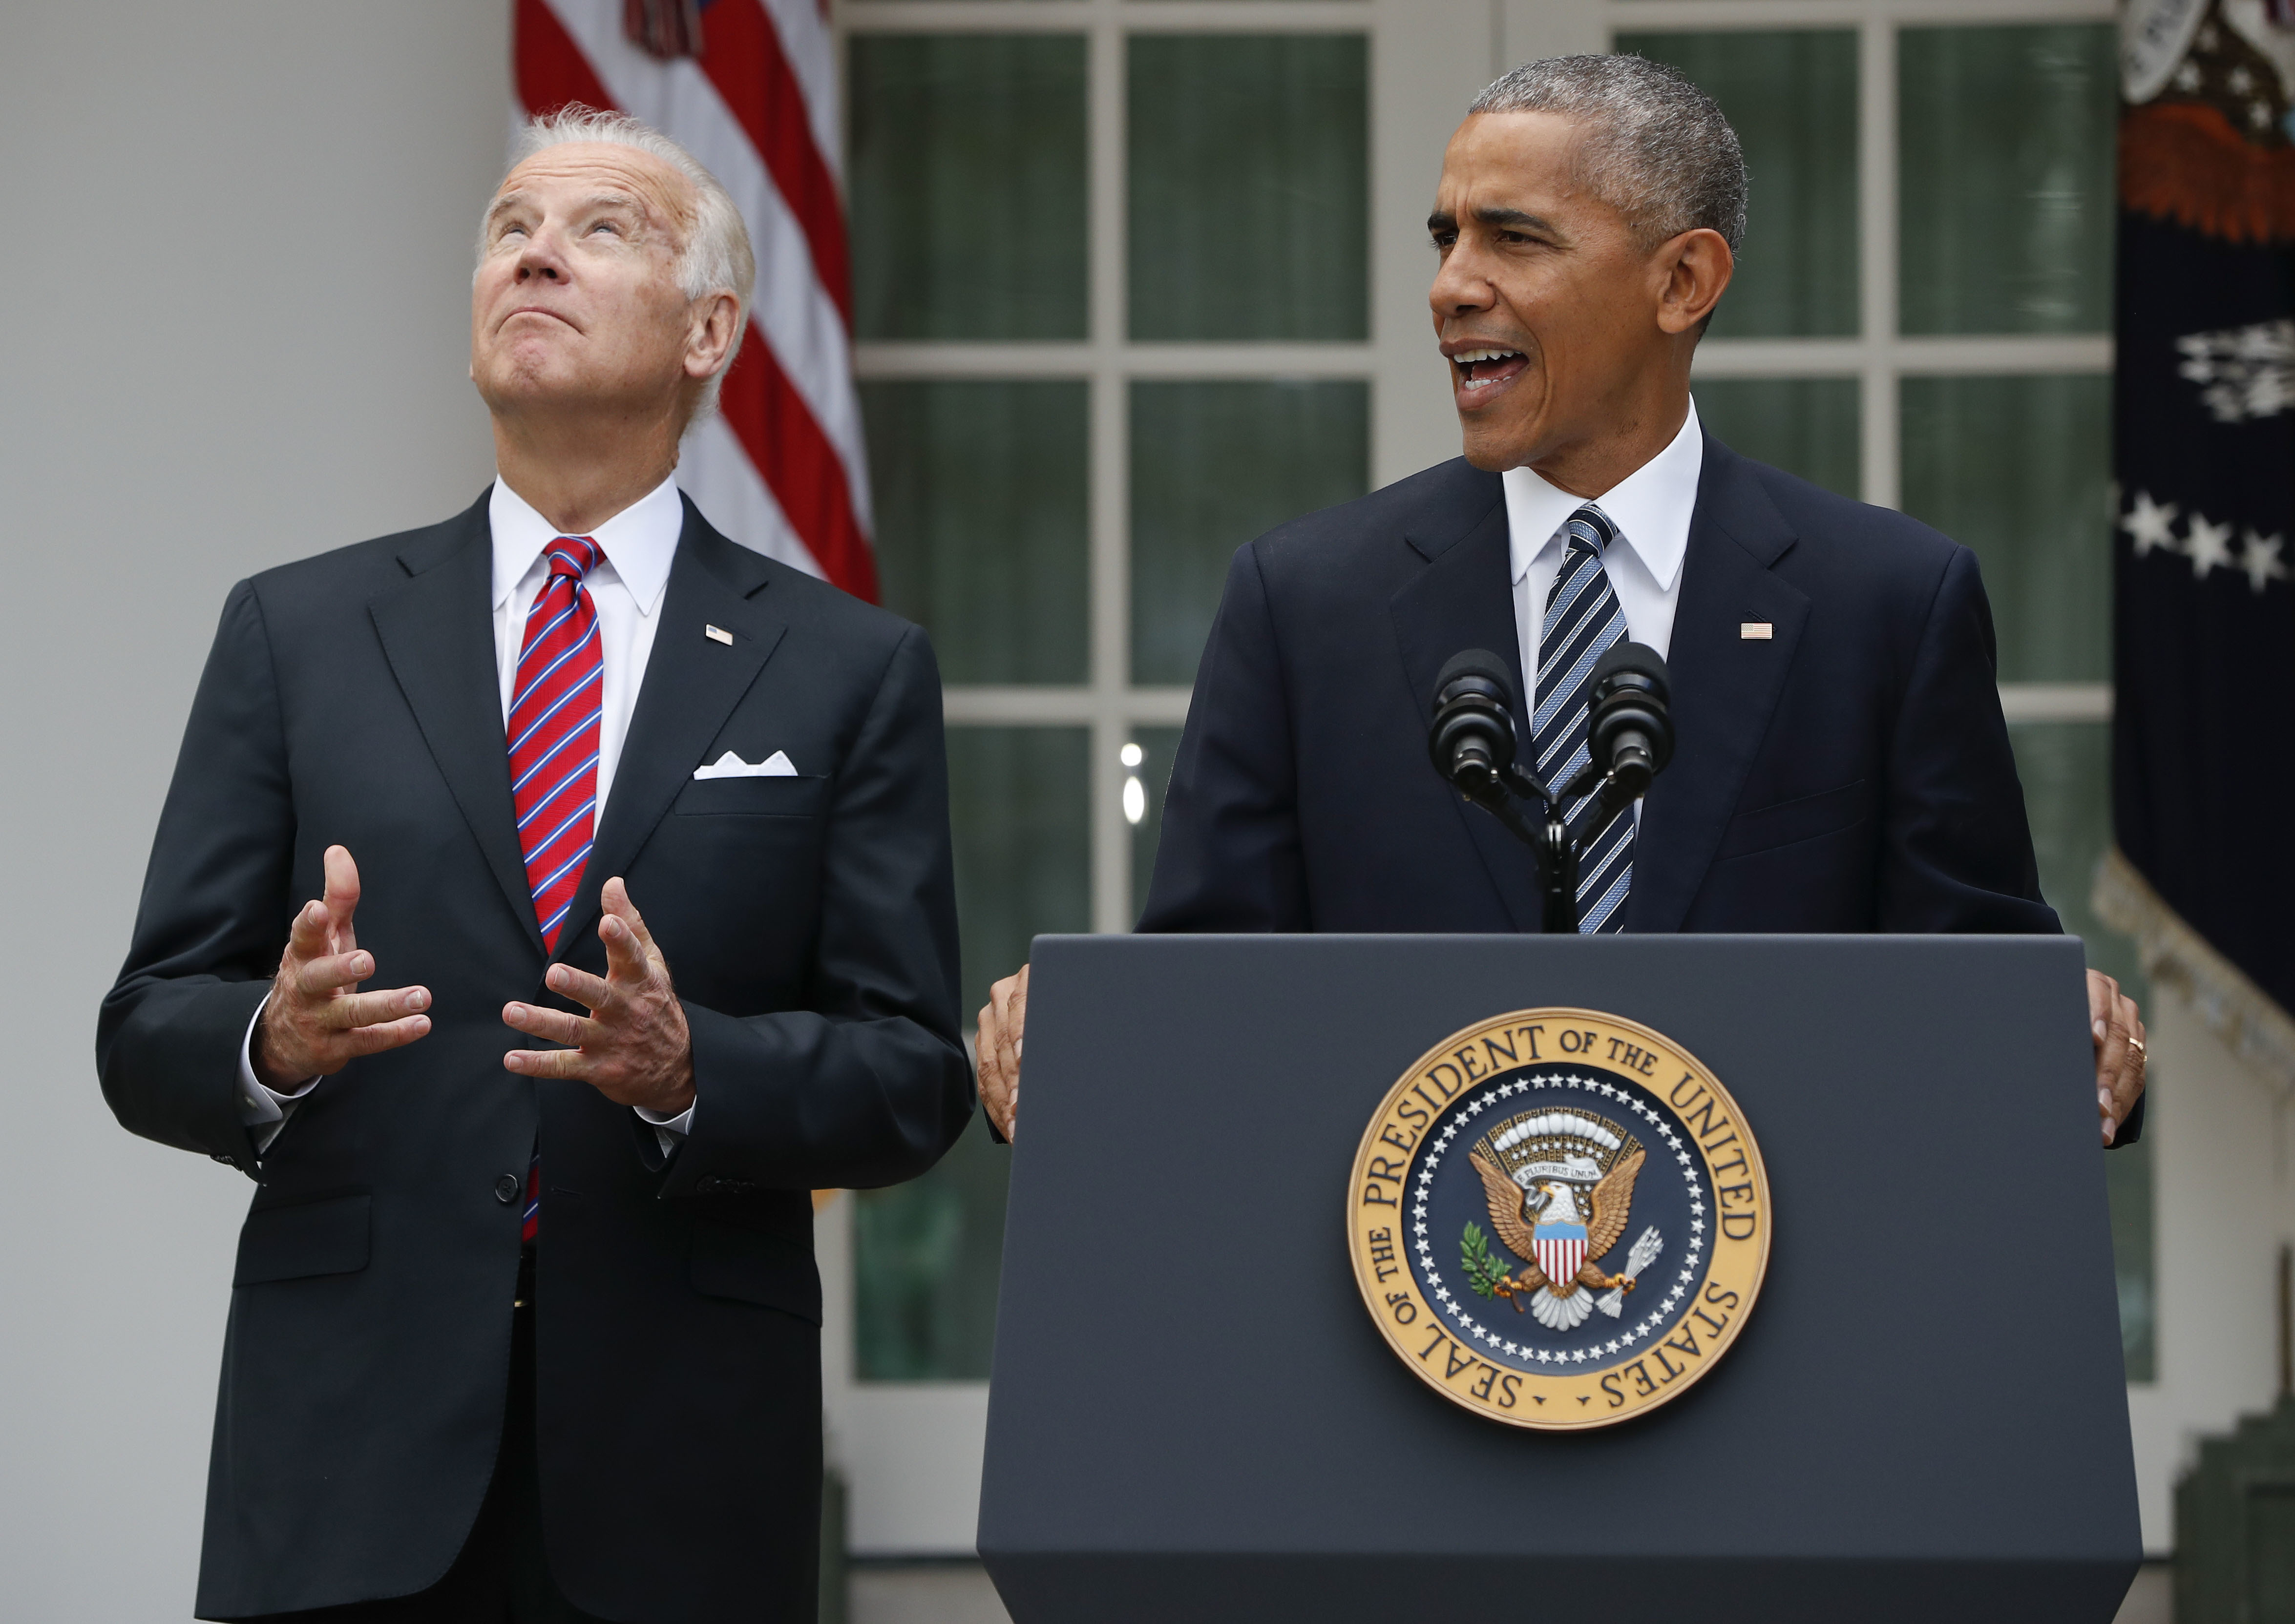 Vice President Joe Biden, left, looks upwards while listening to President Barack Obama speak in the Rose Garden of the White House in Washington. Nearly eight years after he was last on the ballot, Obama is emerging as a central figure in the 2020 presidential election. Democrats are eagerly embracing Obama as a political wingman for Joe Biden, who spent two terms by his side as vice president. Obama remains the partyu2019s most popular figure, particularly with black voters and younger Democrats. File Photo: AP